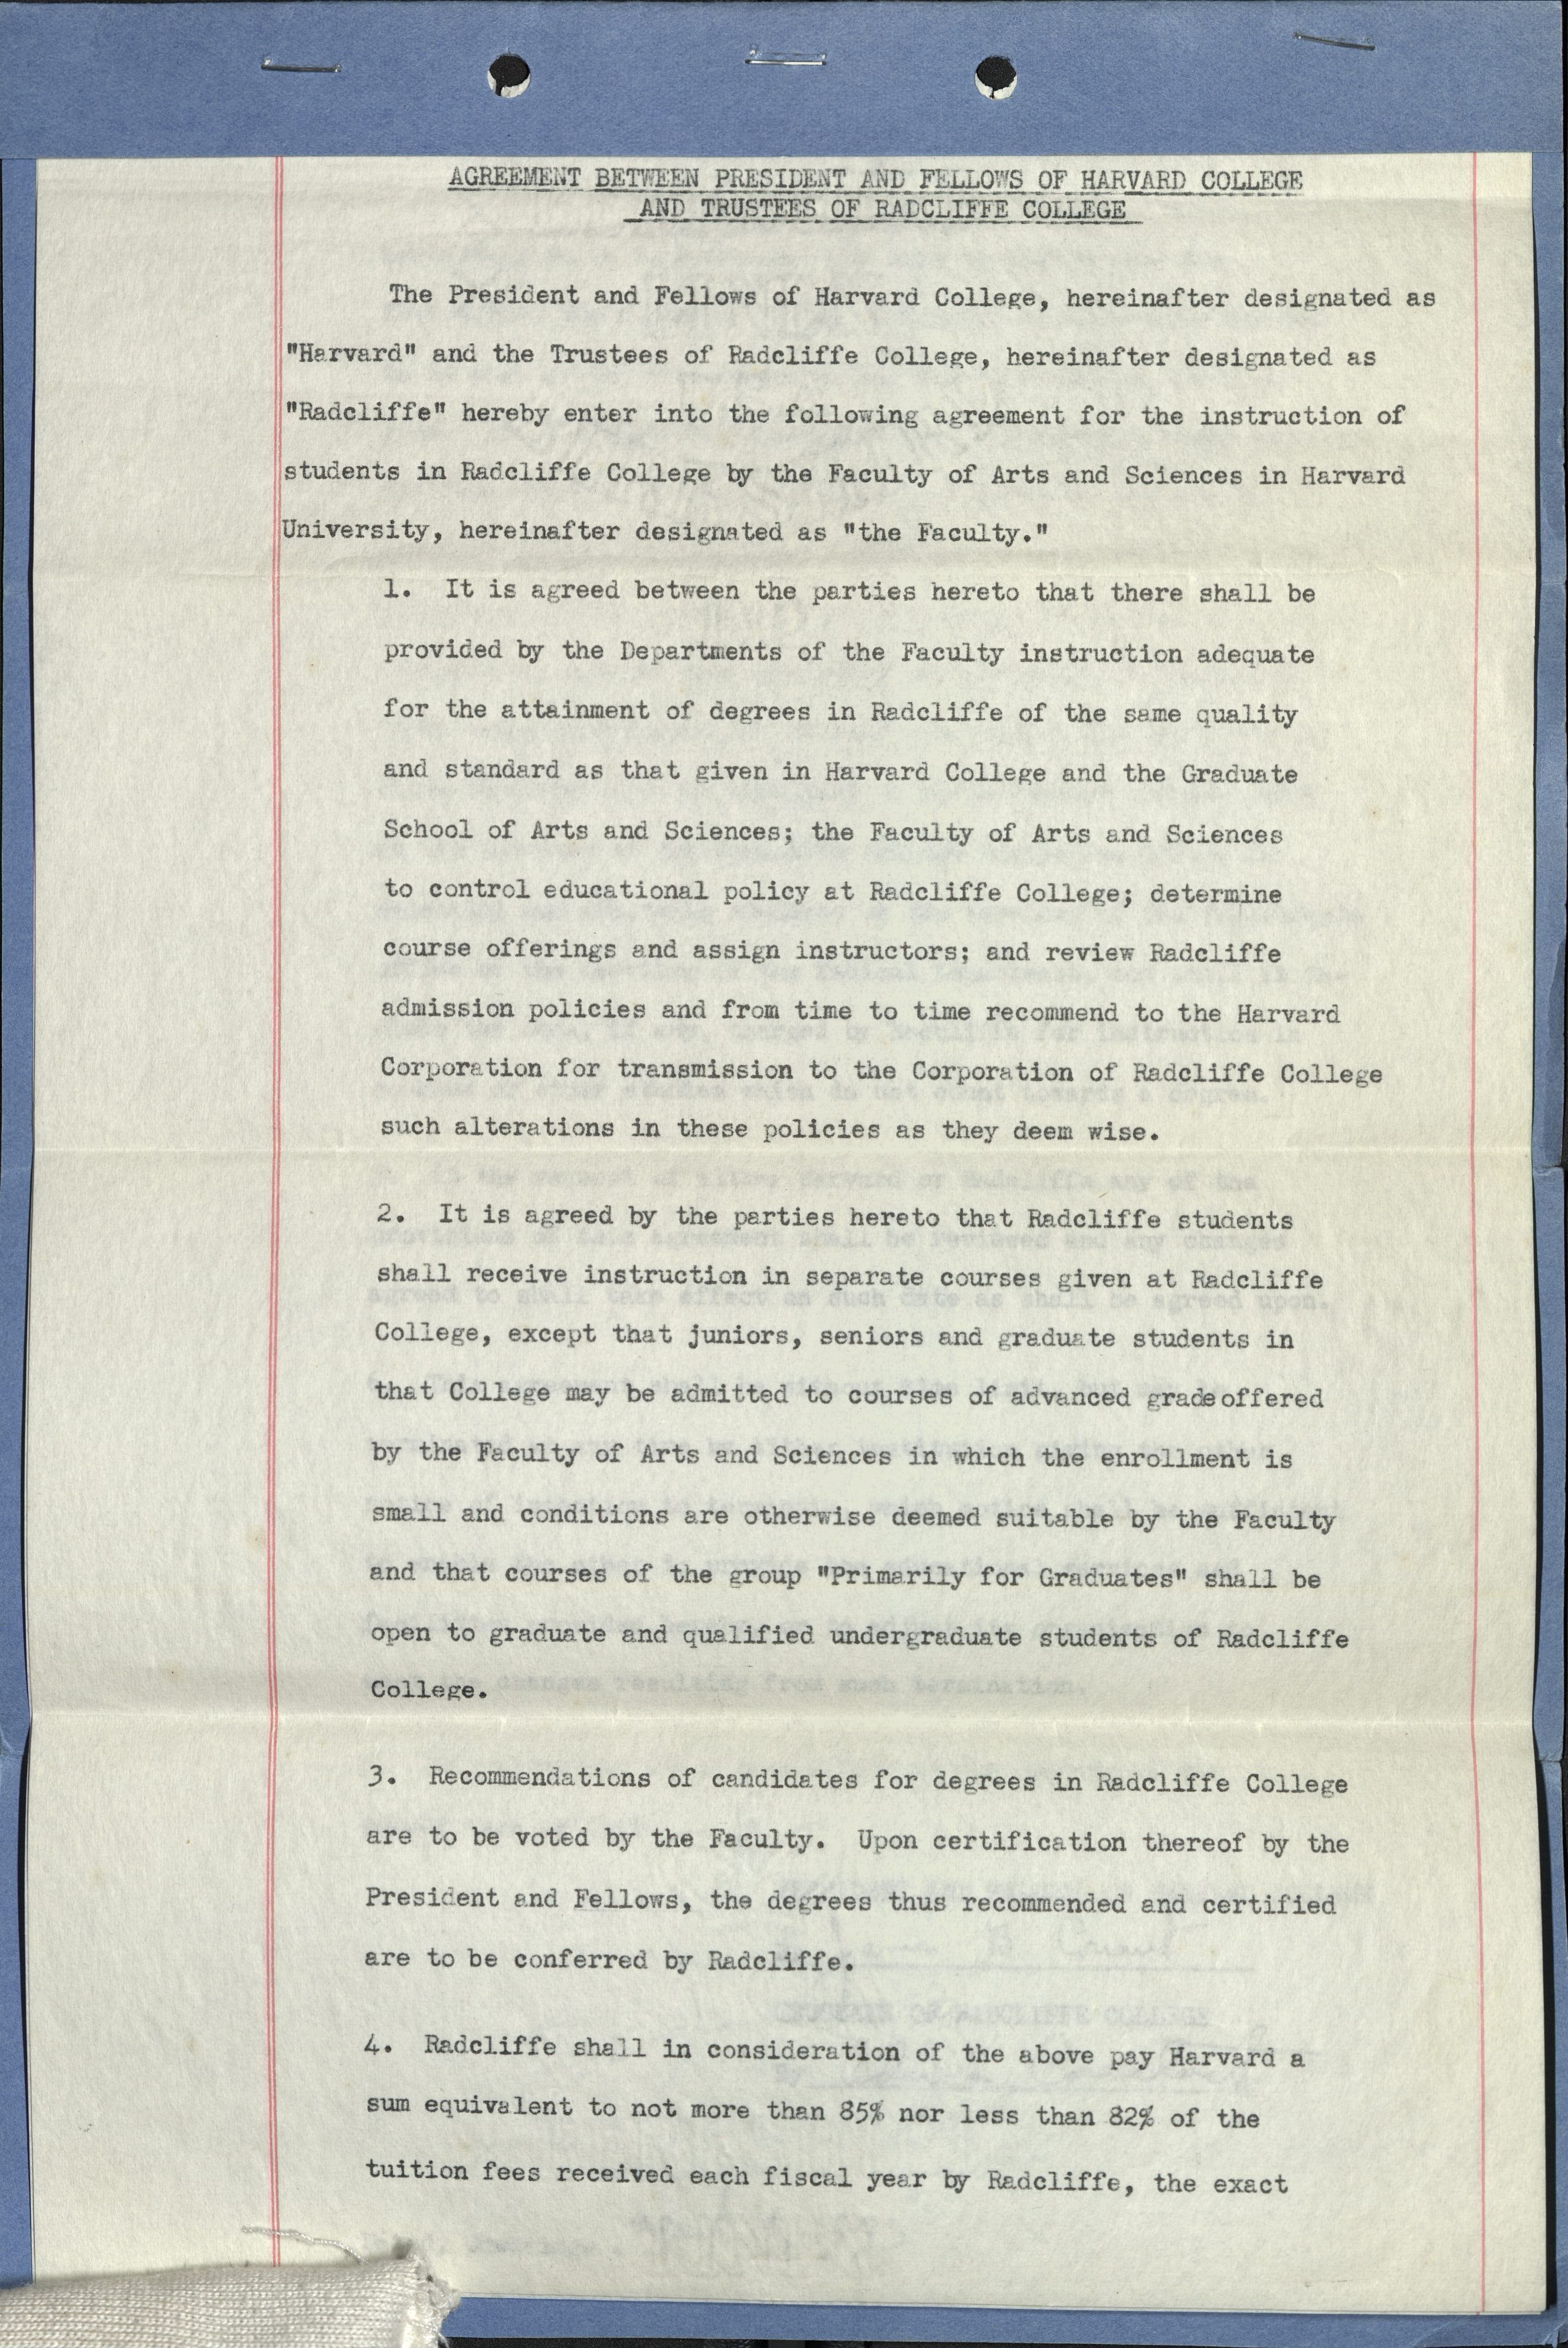 Radcliffe College and Harvard College agreement